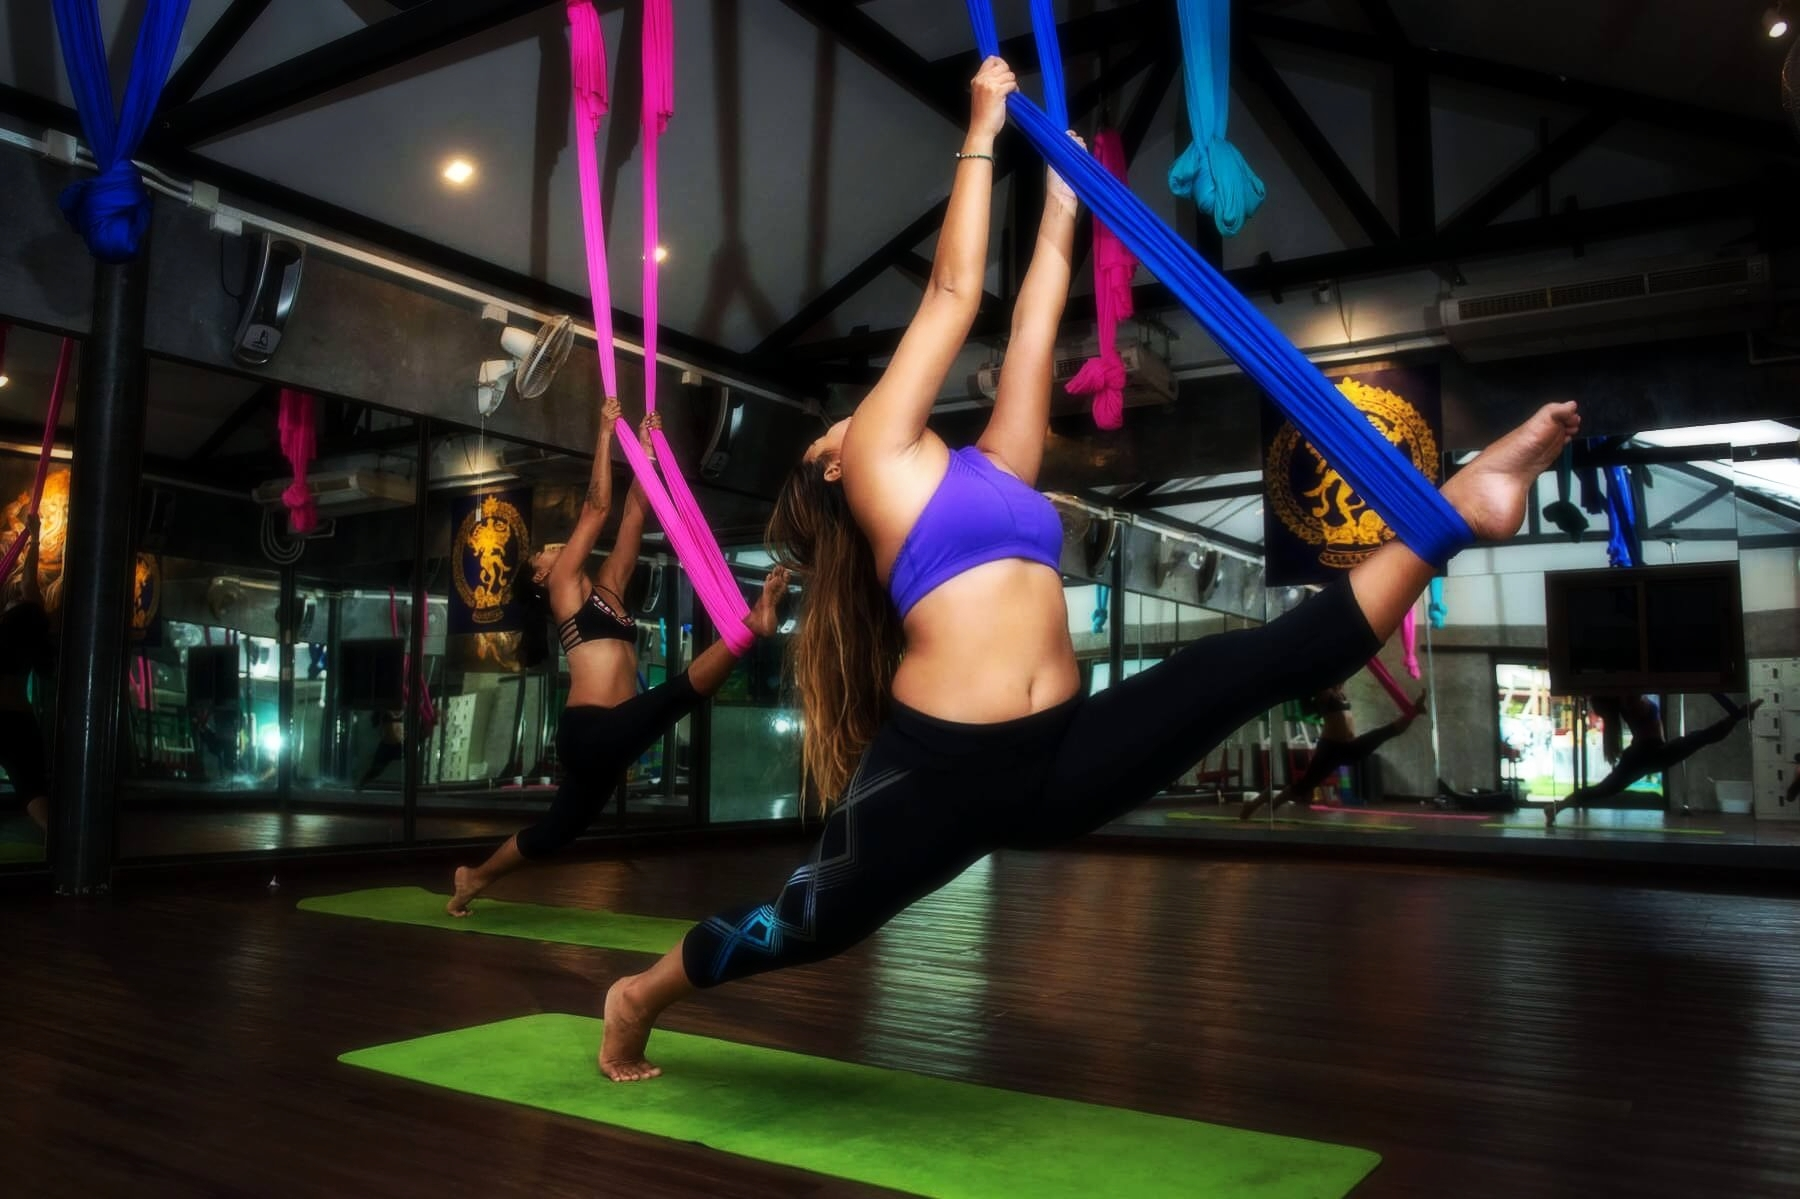 The Best Aerial Yoga Classes in Phuket, Chalong Thailand at 4 Elements Hot Yoga Resort.